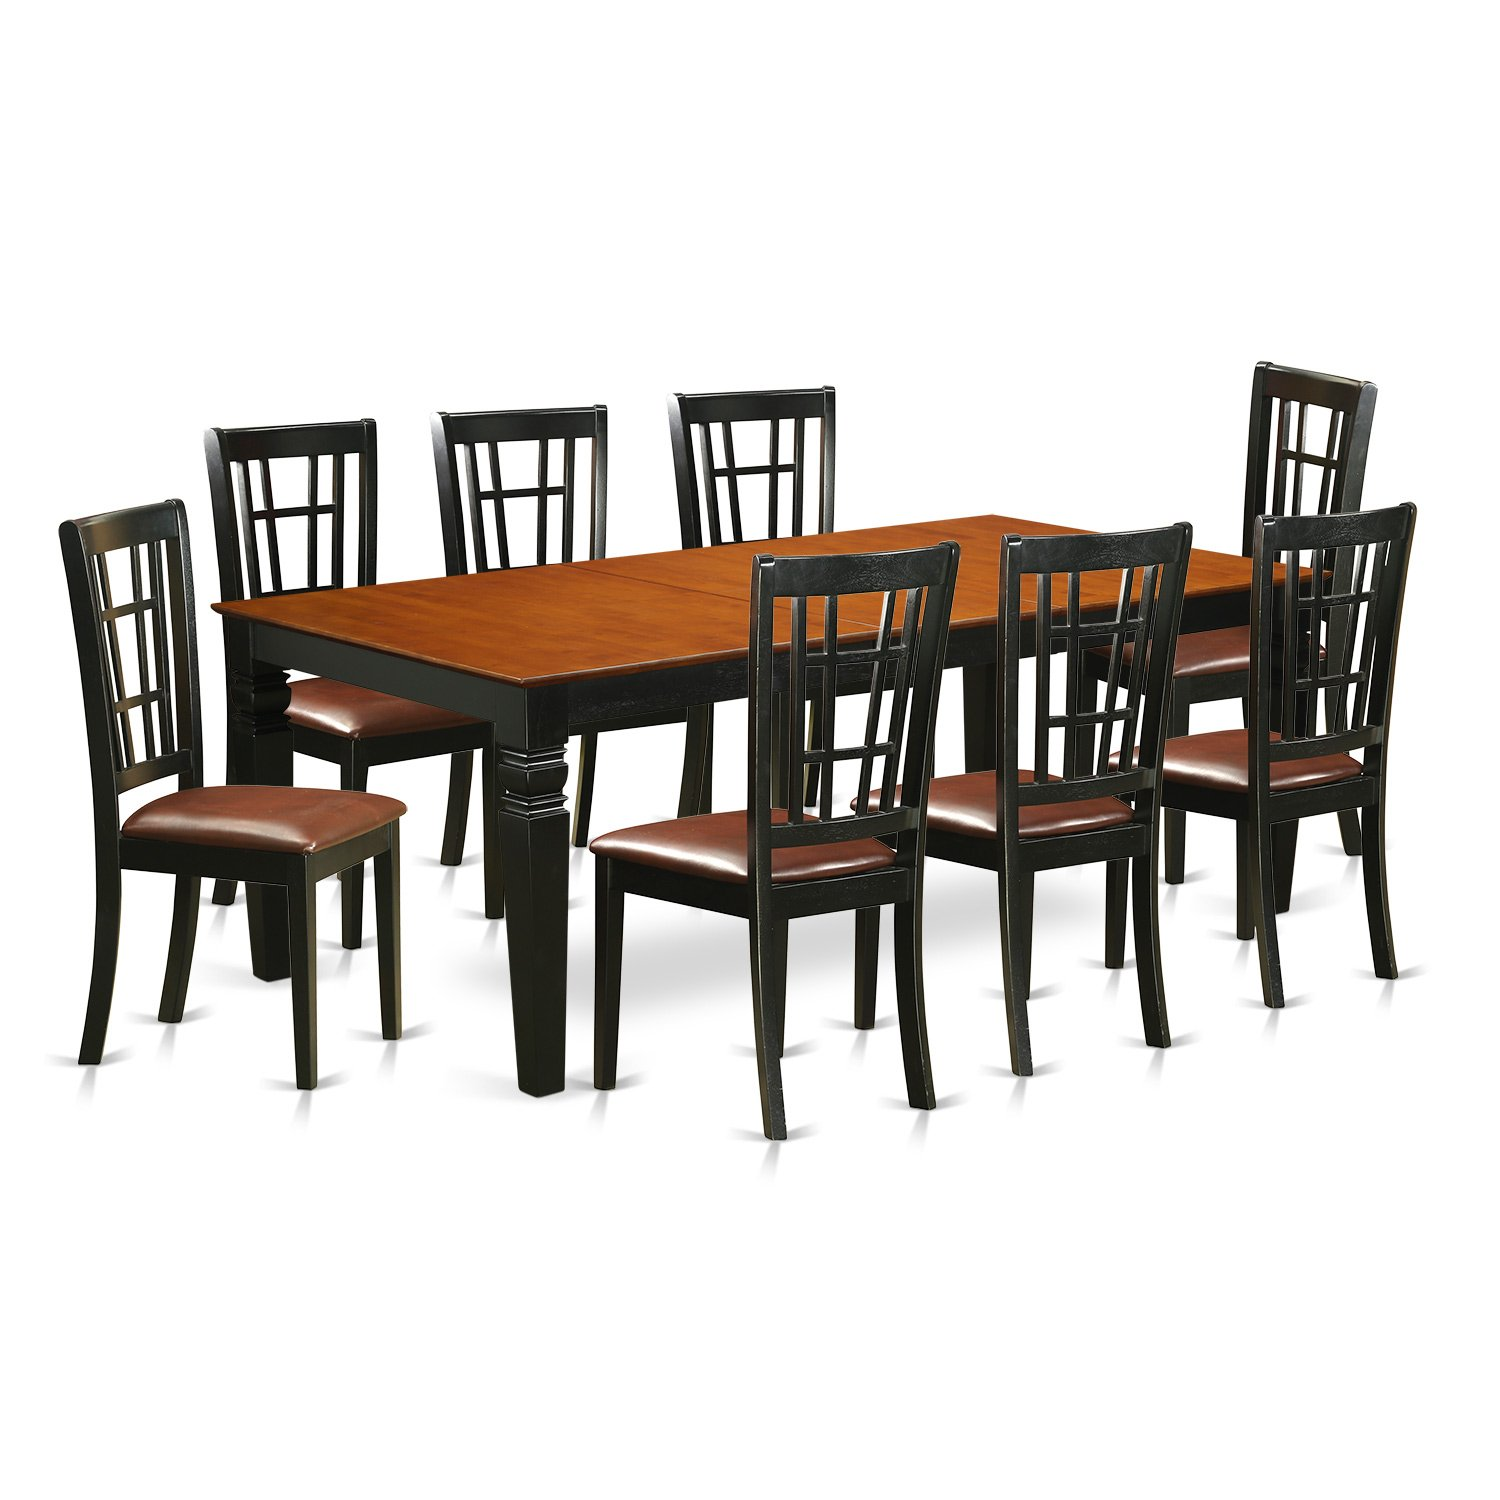 East West Furniture 9 PC Kitchen Table Set with One Logan Dining Table & Eight Dining Room Chairs in black & Cherry Finish by East West Furniture